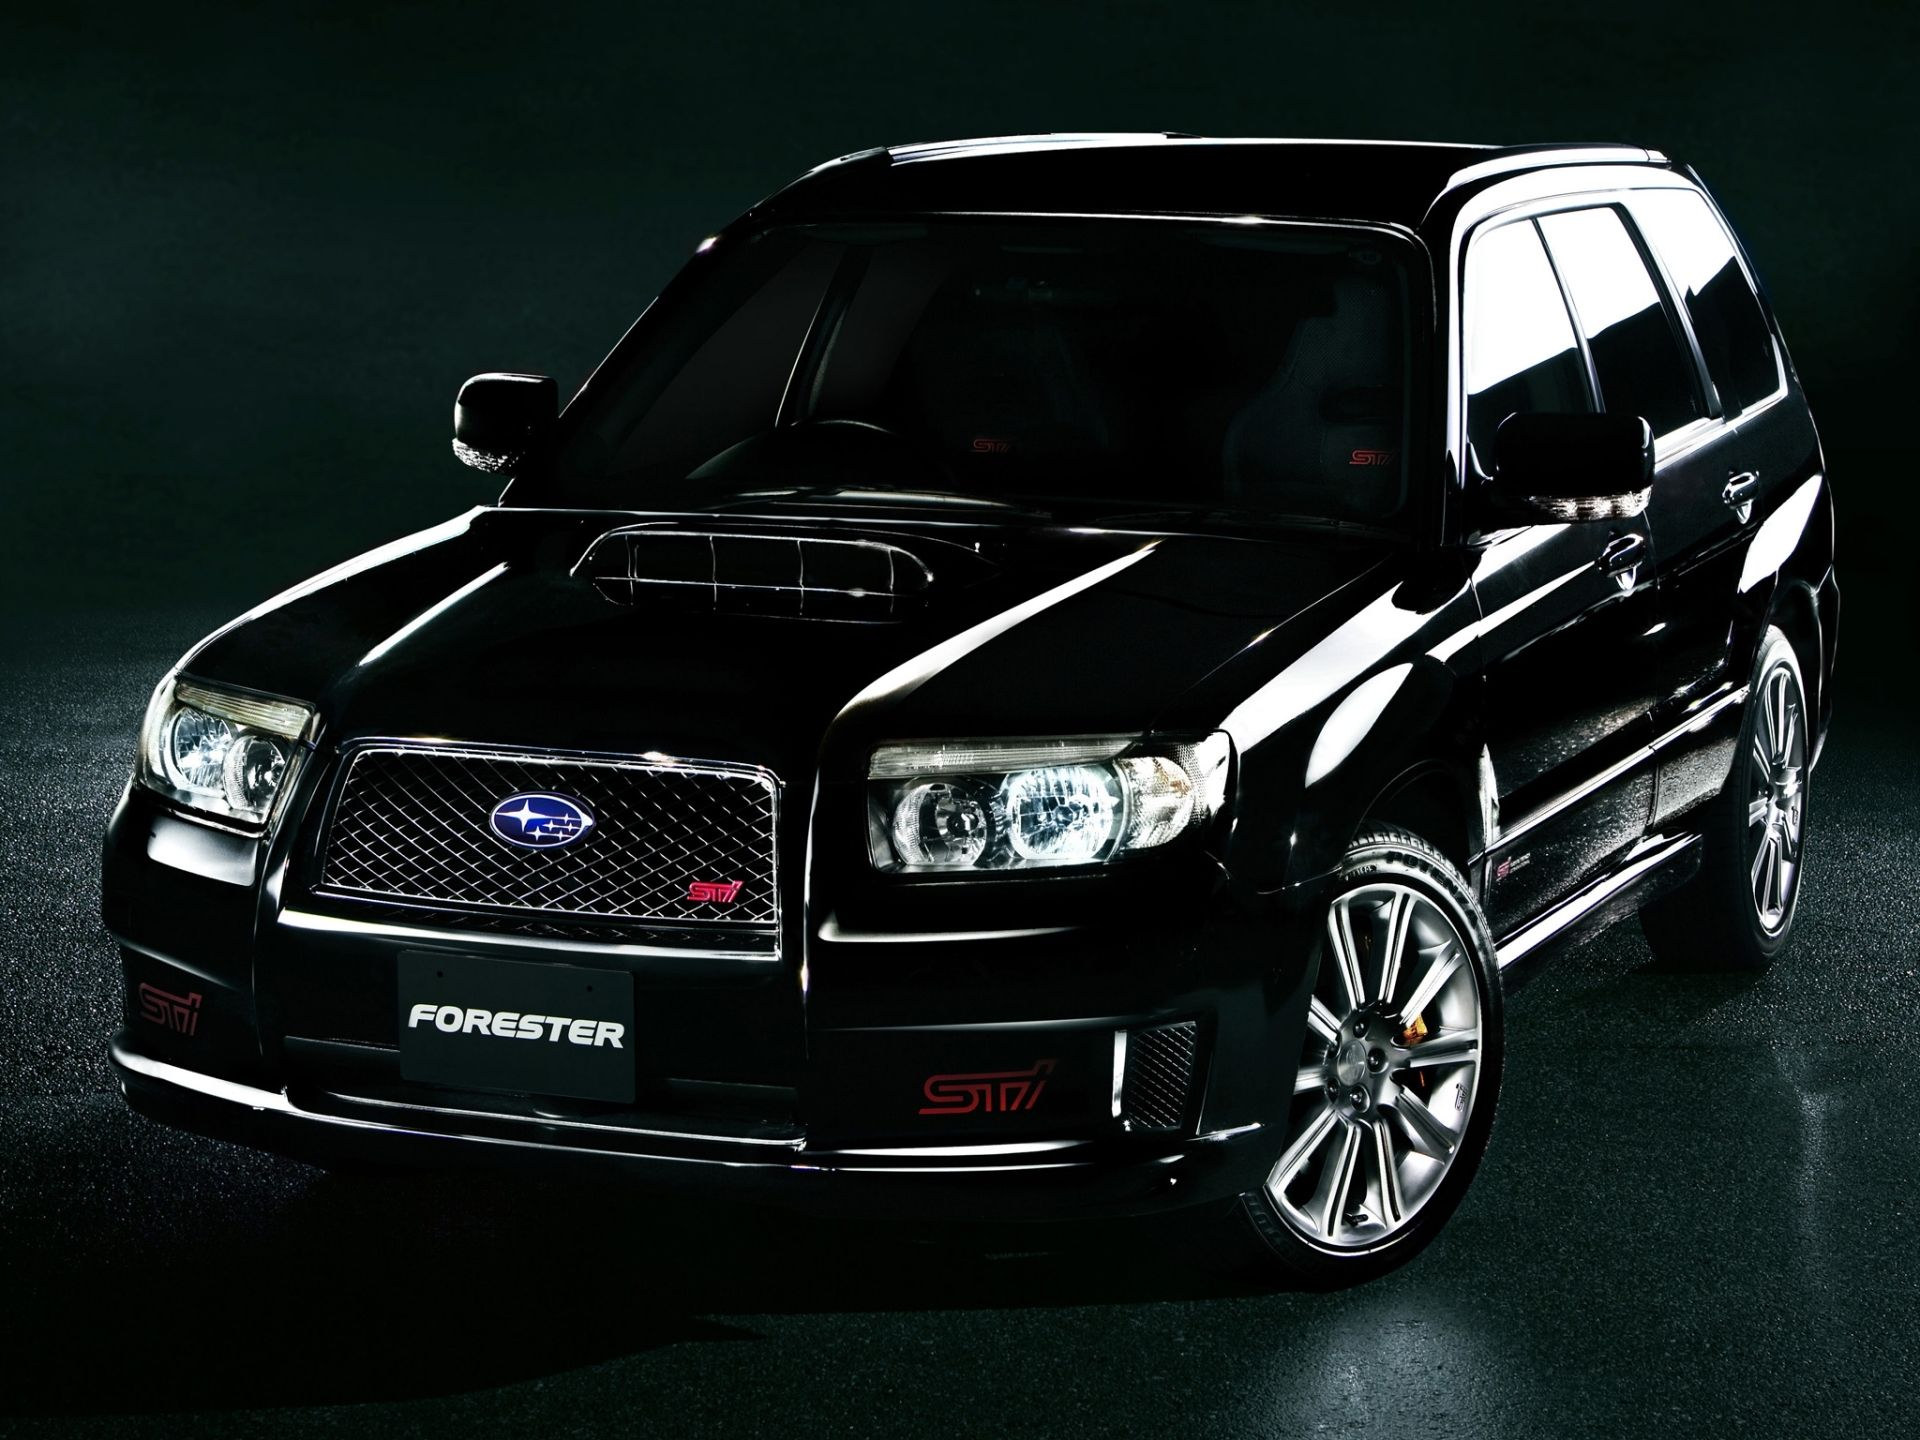 View Of Subaru Forester Wallpapers Hd Car Wallpapers Impreza Wrx